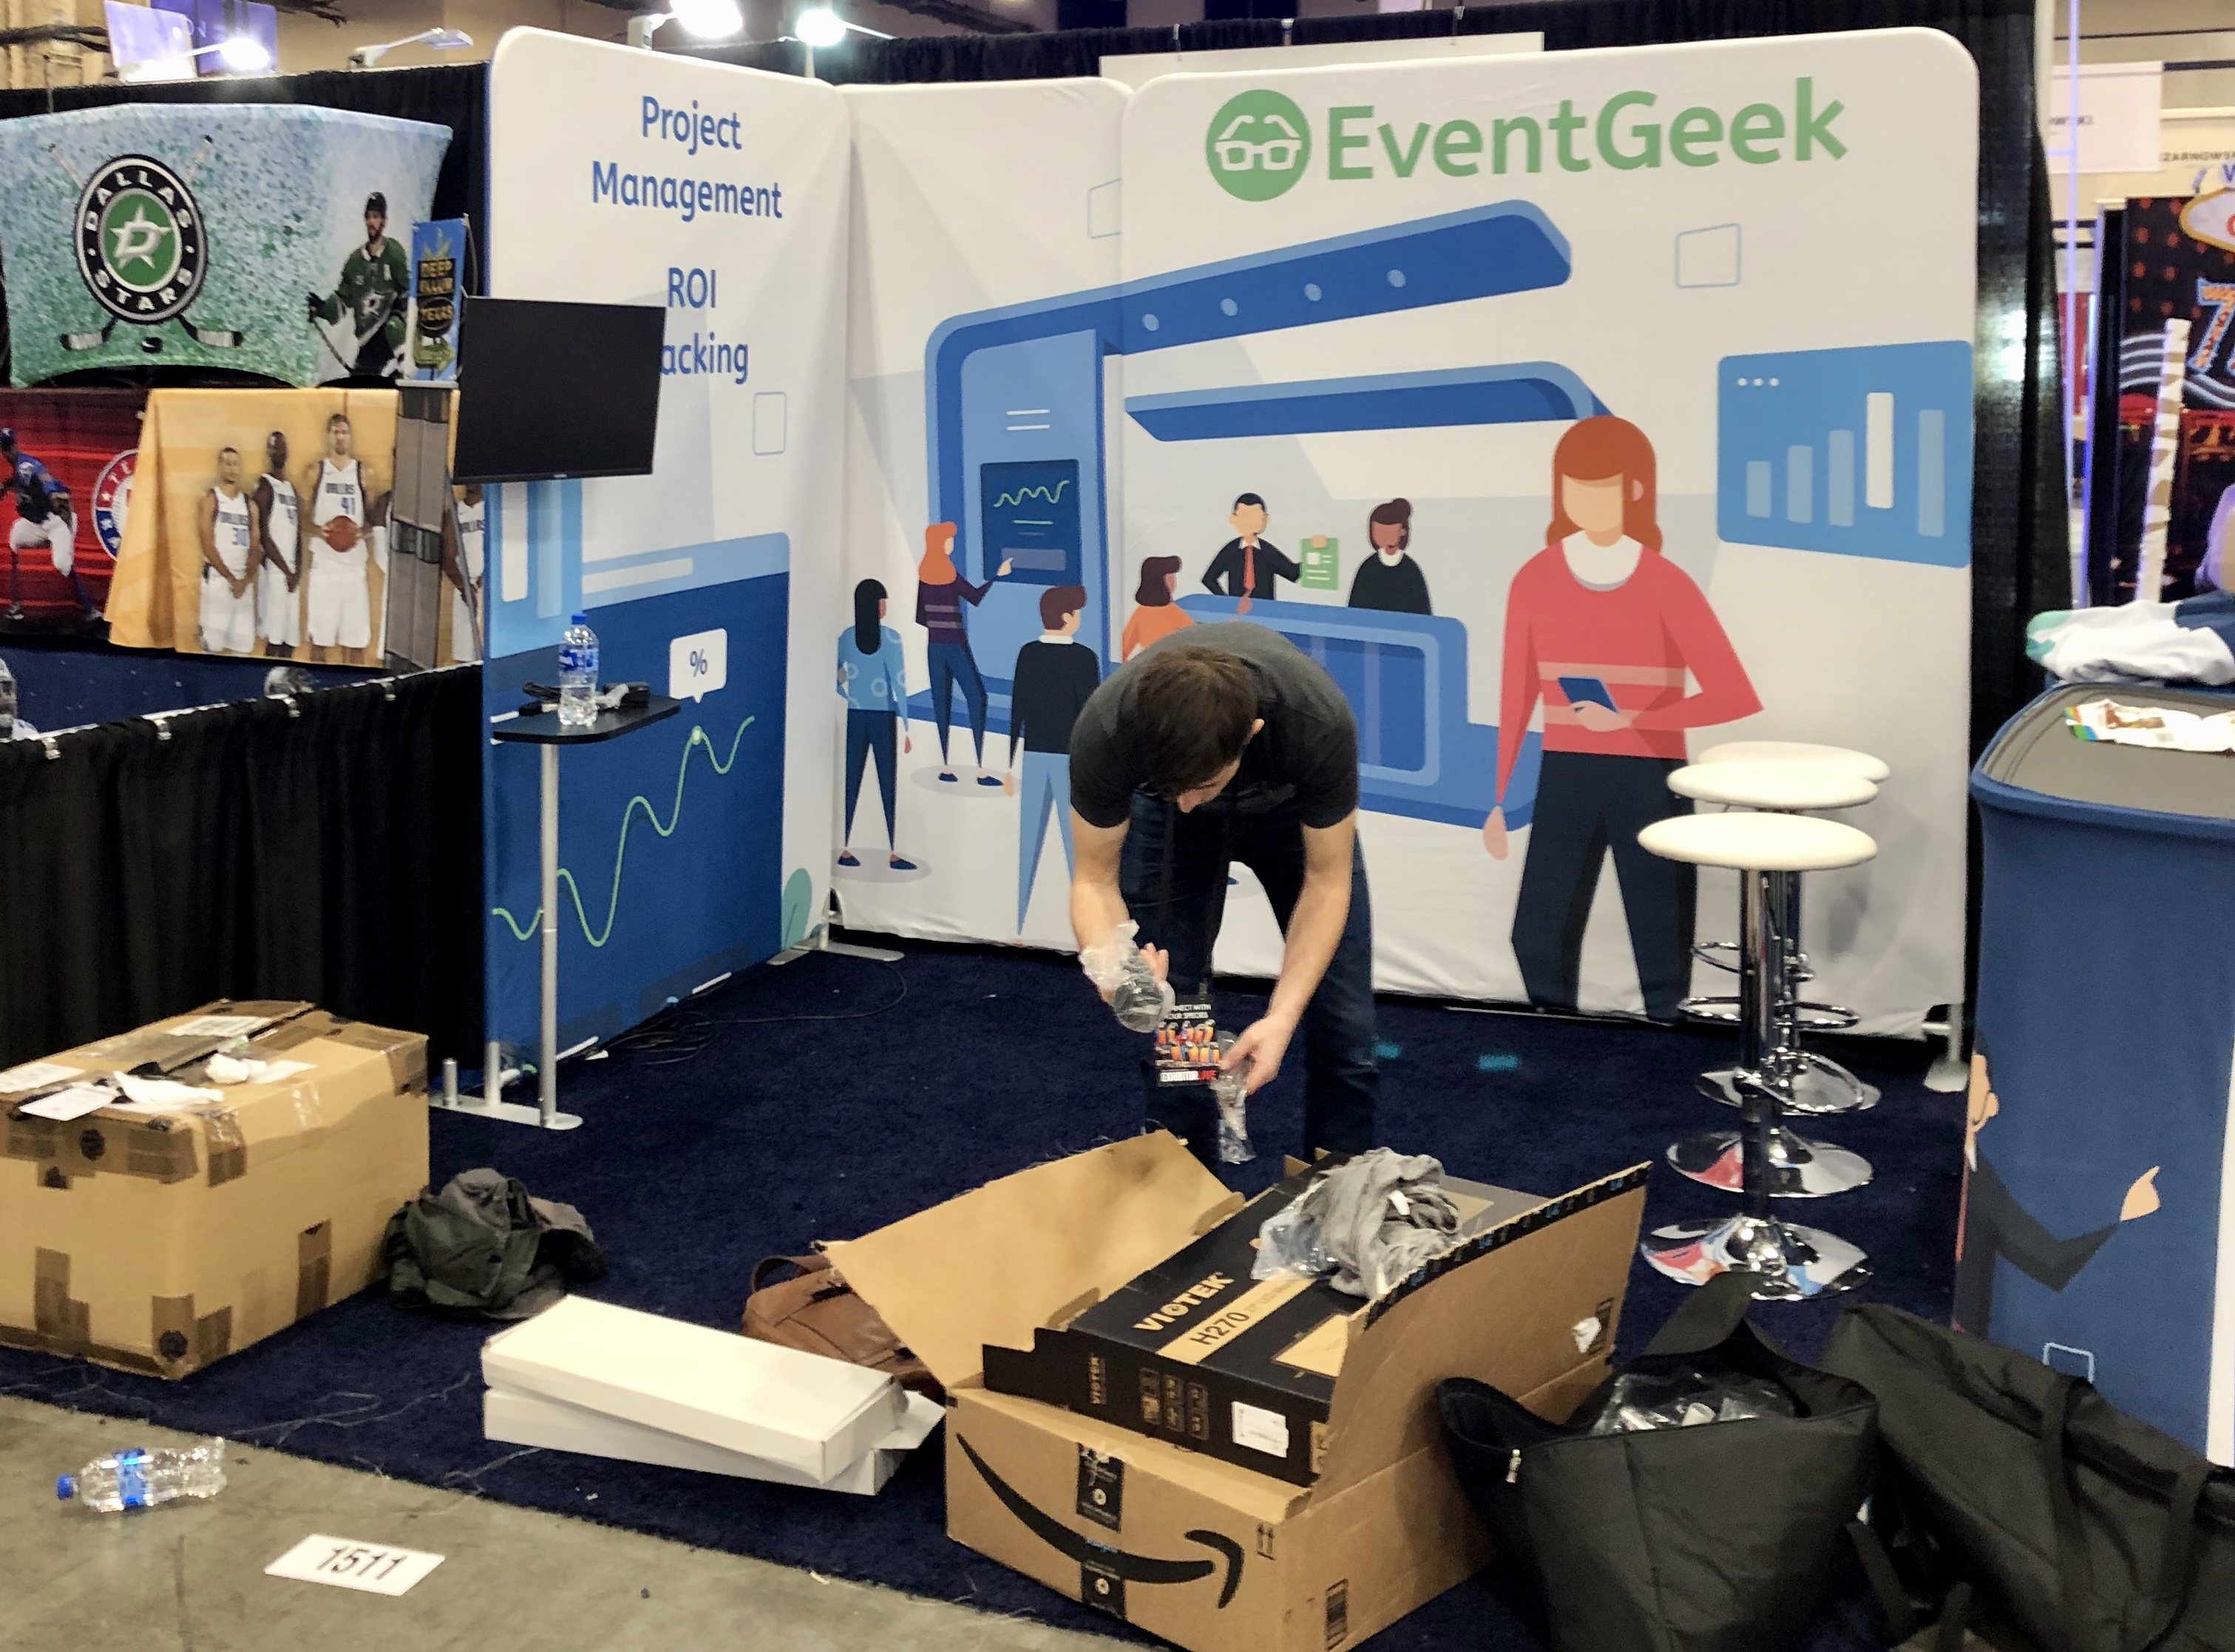 EventGeek booth setup at ExhibitorLive